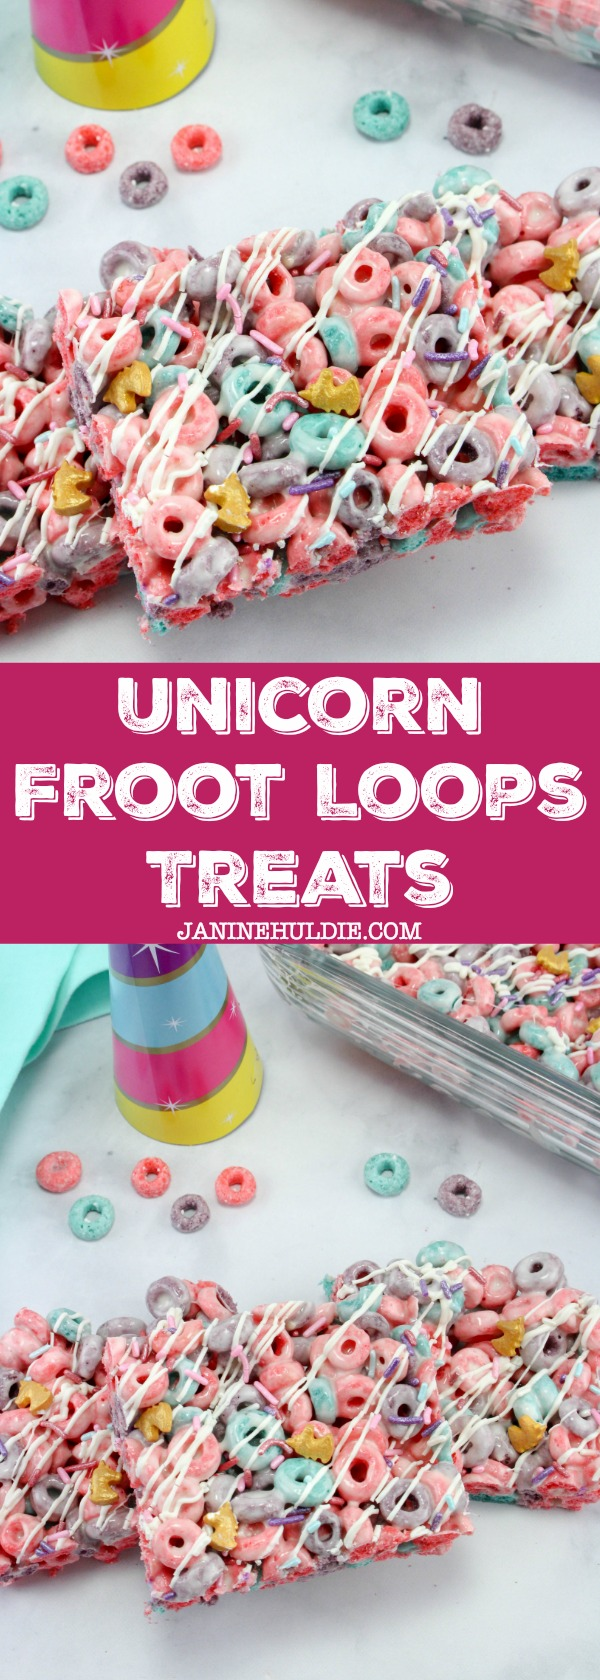 Unicorn Froot Loops Treats Recipe